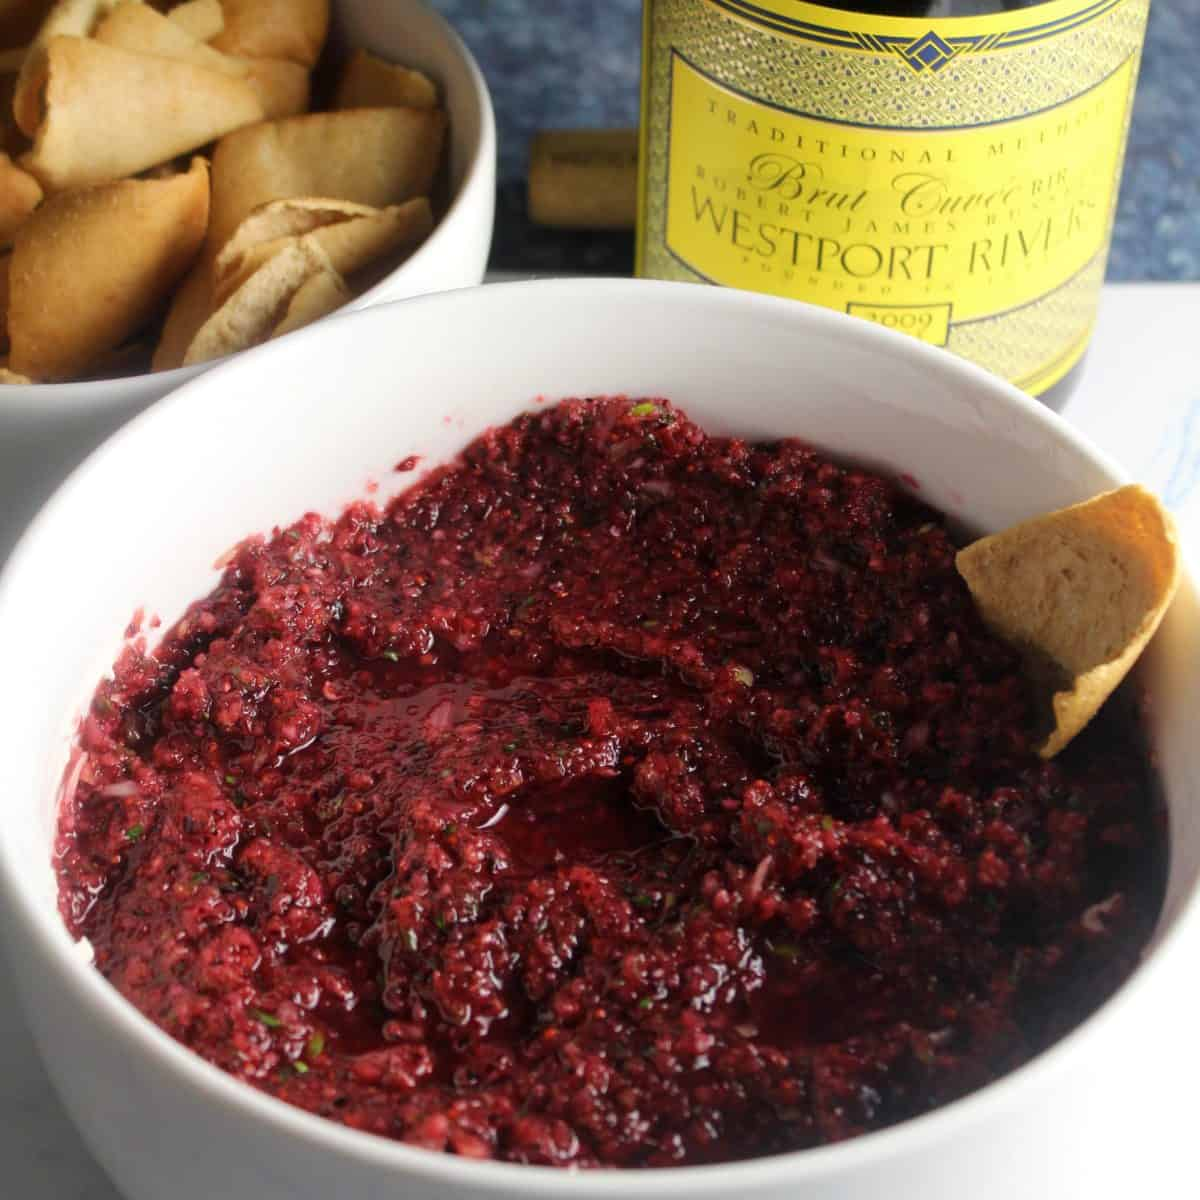 white bowl with cranberry dip served with a bottle of Westport Rivers Brut Cuvée.